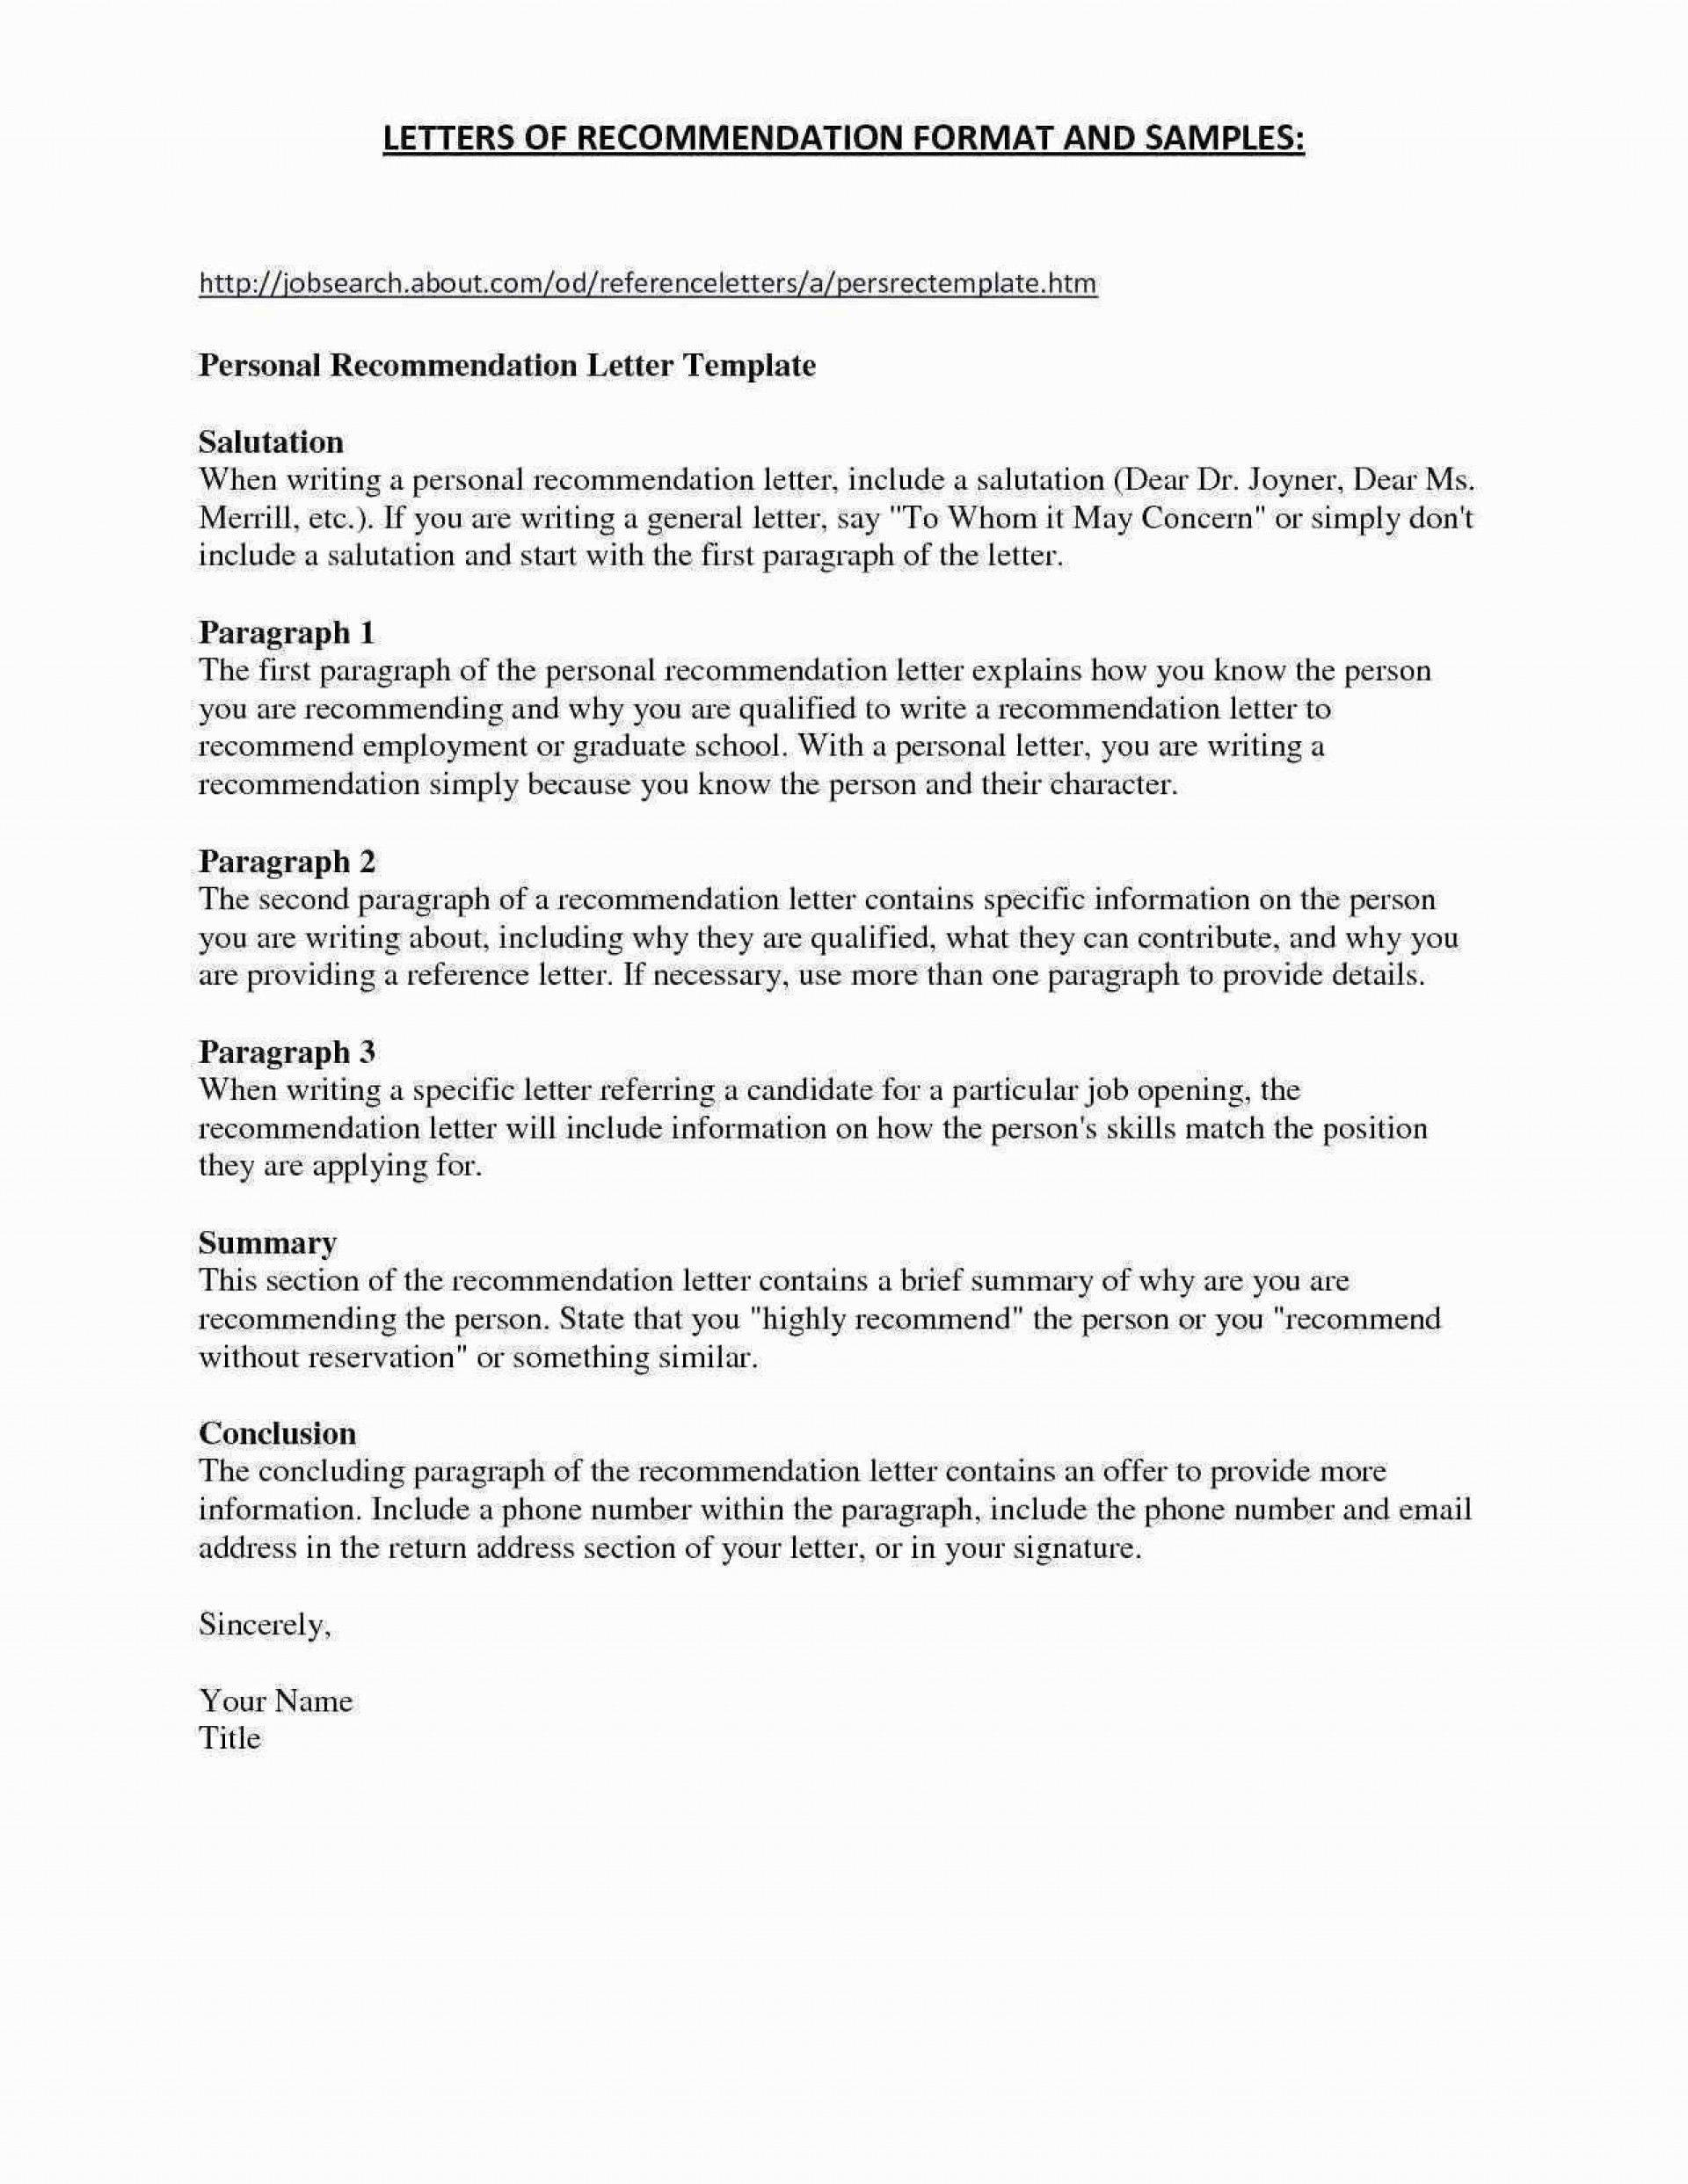 011 Profile Essay Outline Fallacies Worksheet Luxury For